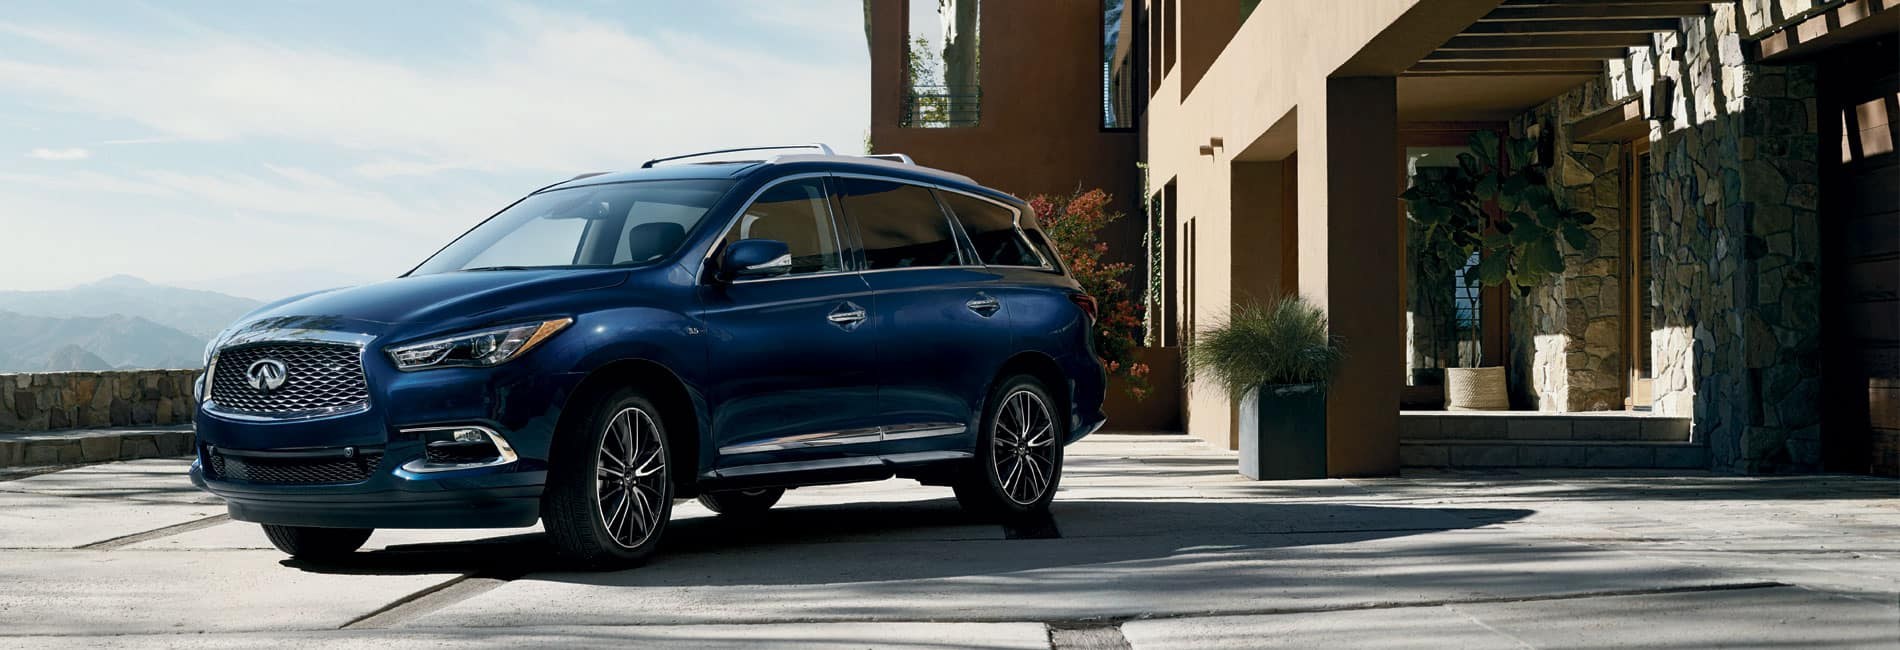 2019 INFINITI QX60 for Sale in Merrillville, IN